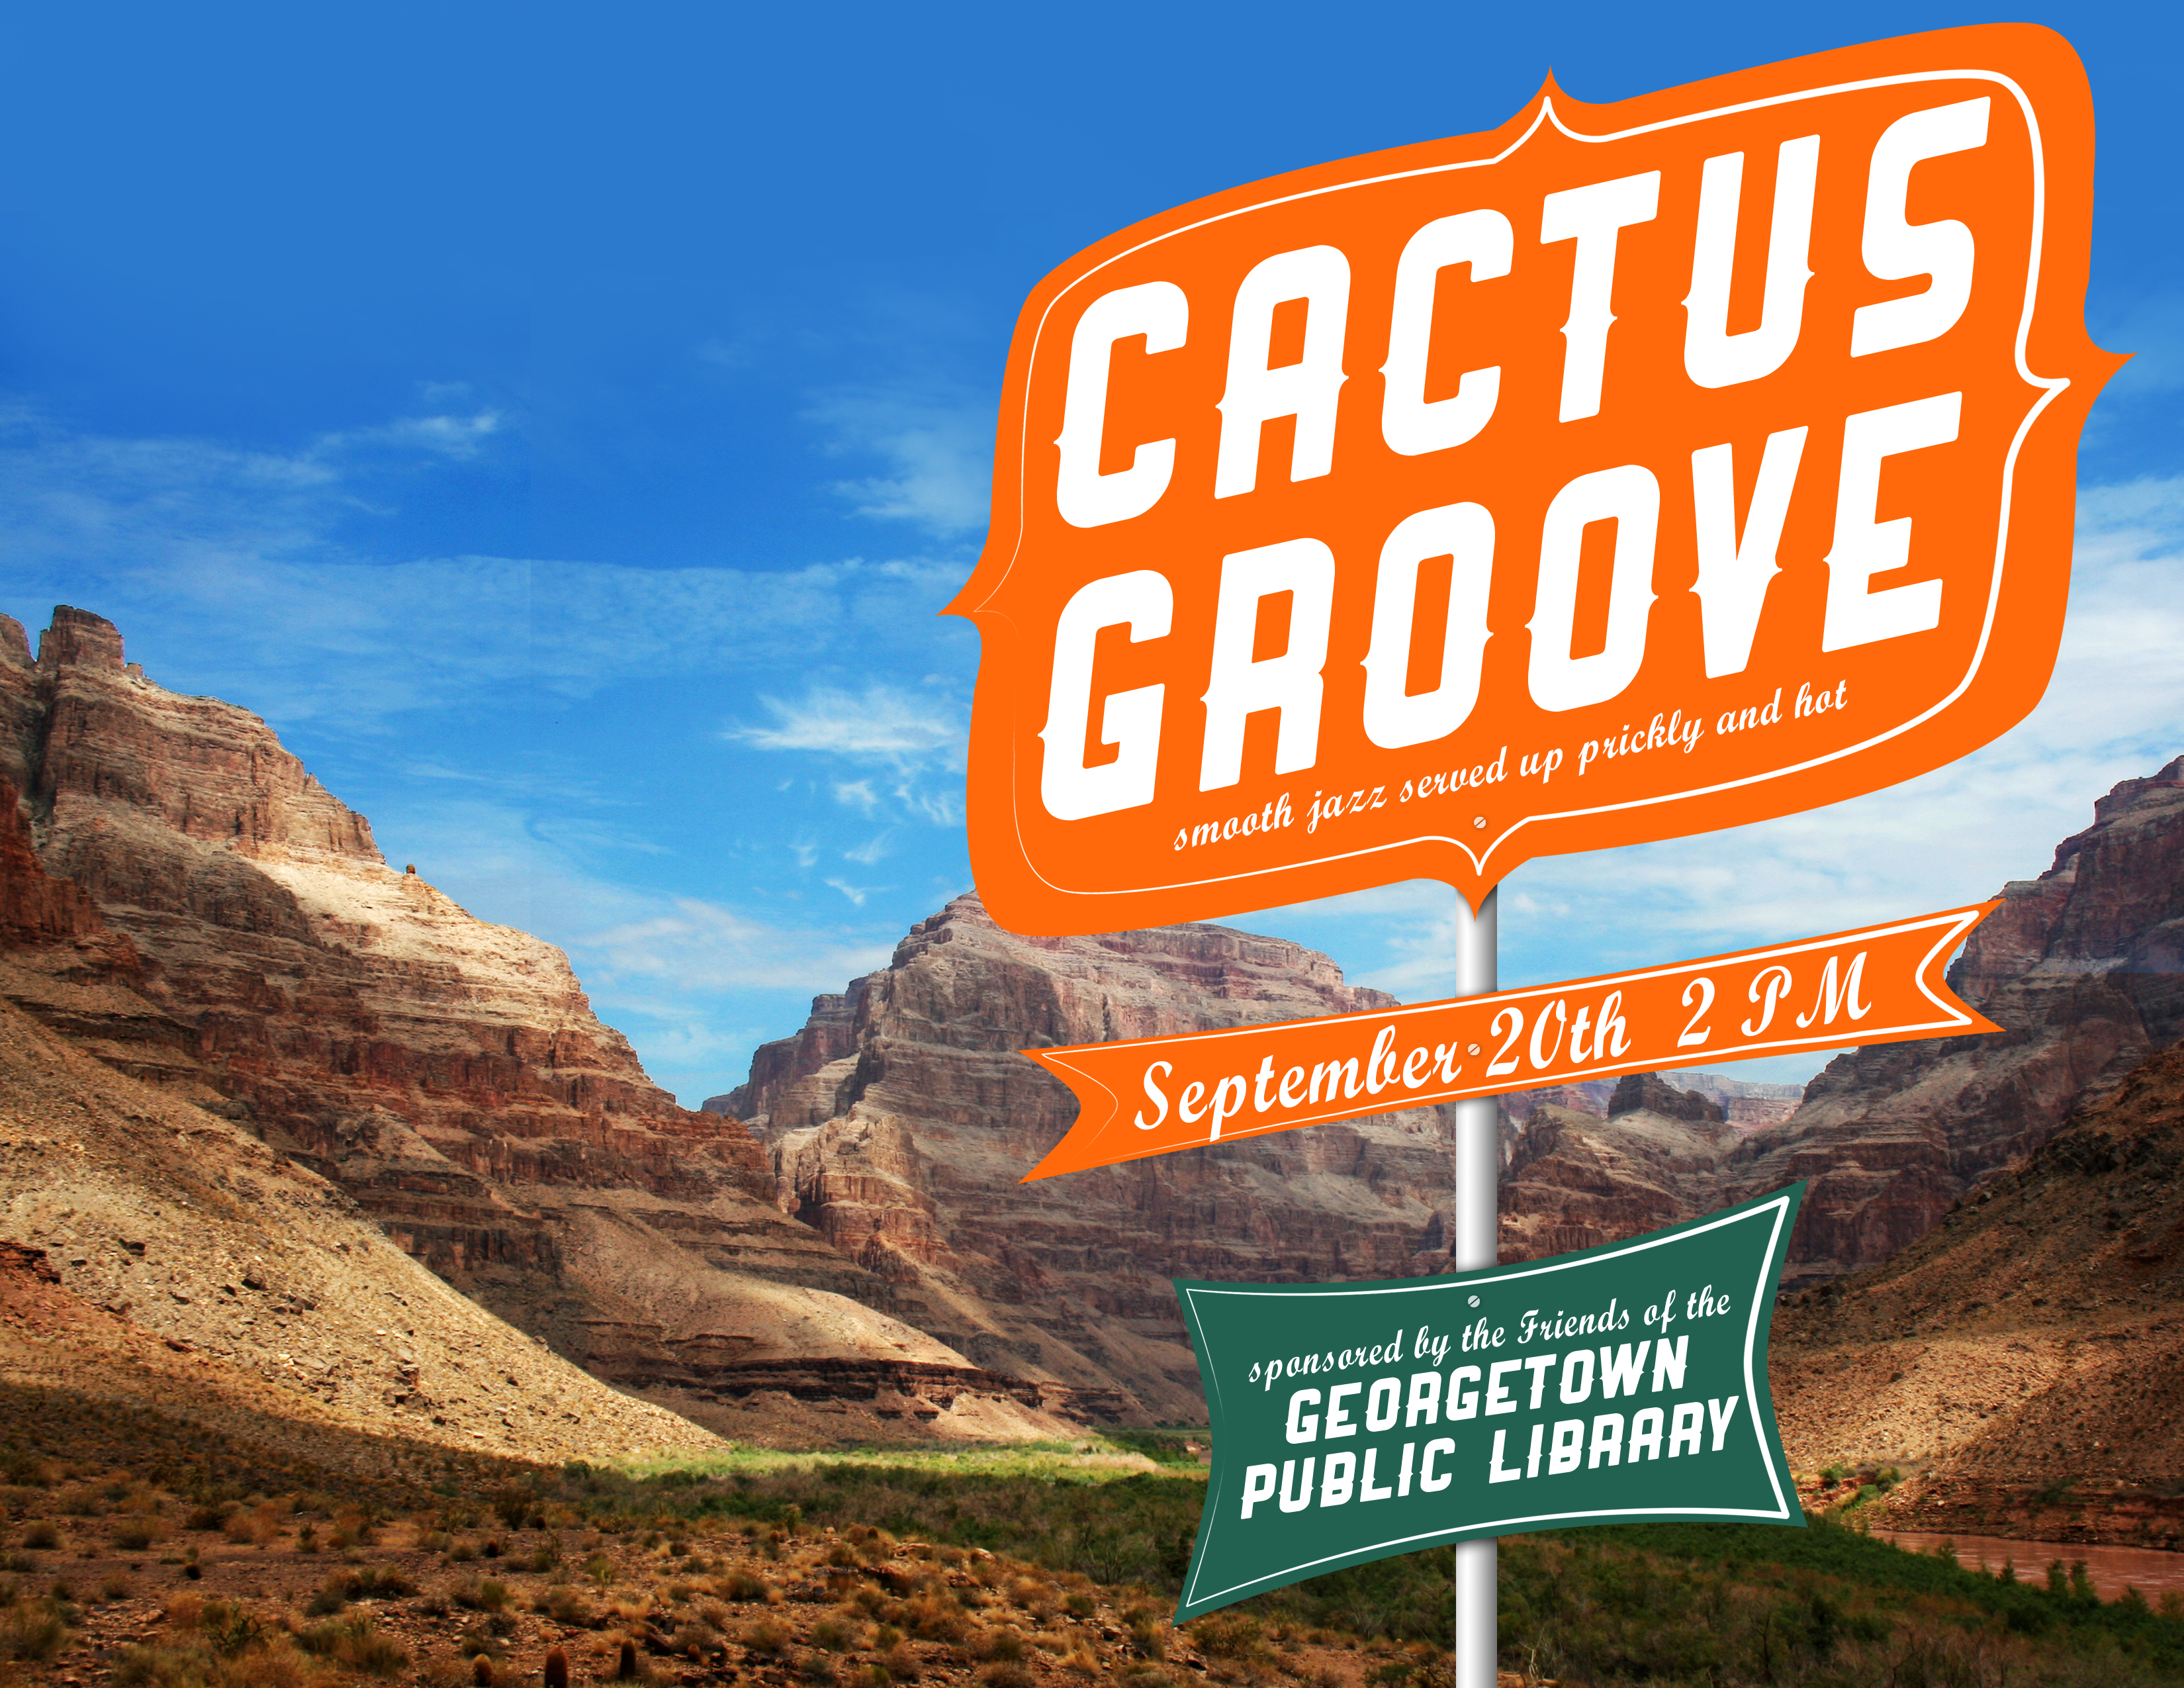 Cactus Groove: Smooth Jazz in the Library Sept. 20